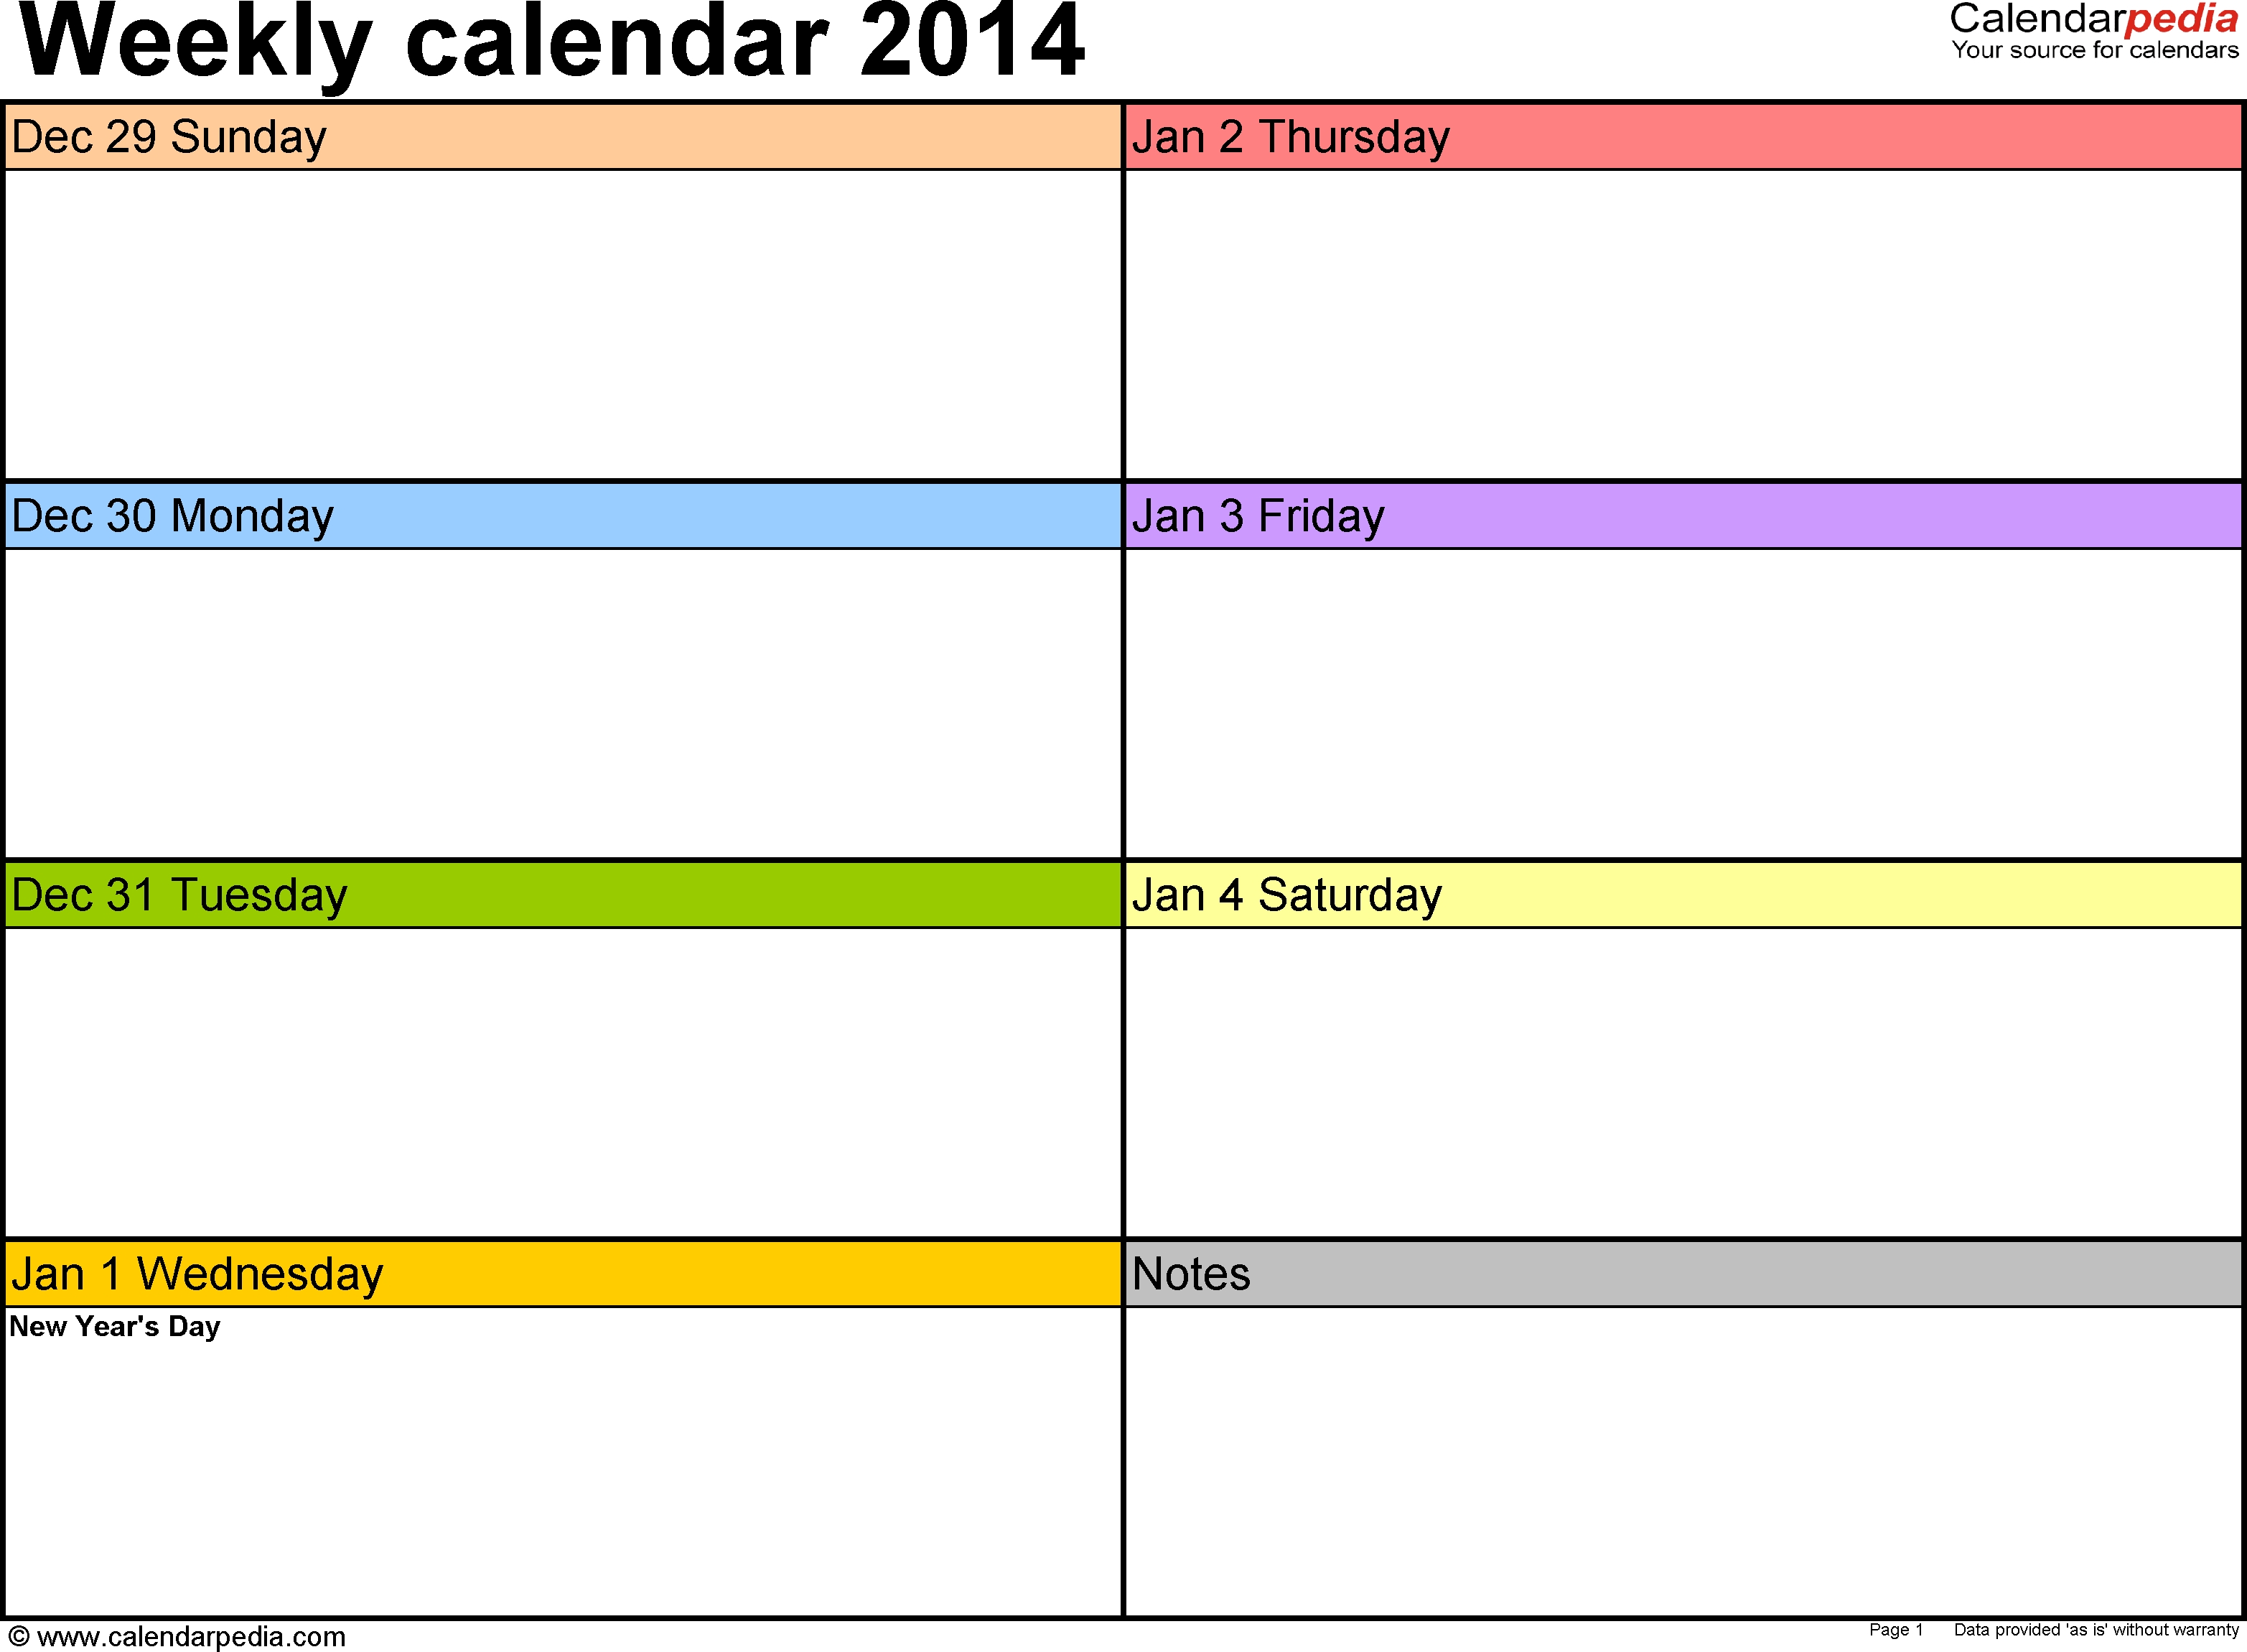 Weekly Calendar 2014 For Excel - 4 Free Printable Templates 4 Day Calendar Template